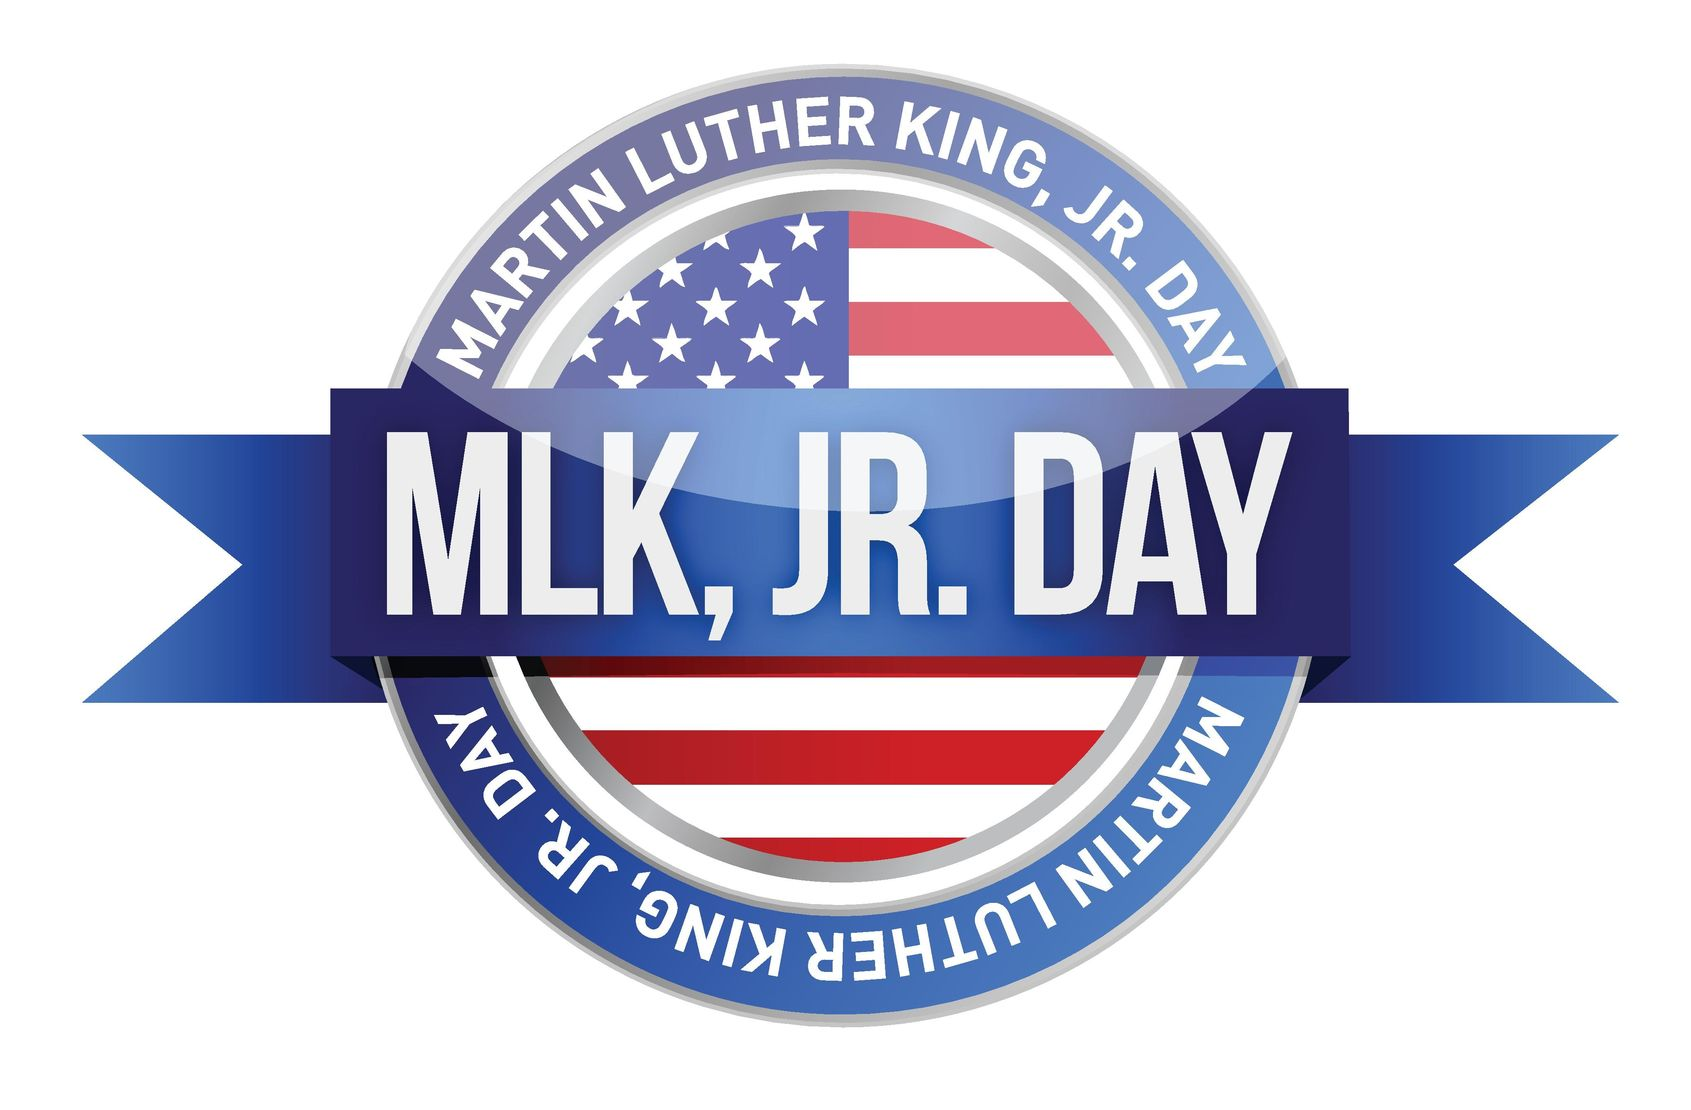 Martin Luther King, Jr. Day | Dalko Resources Inc.